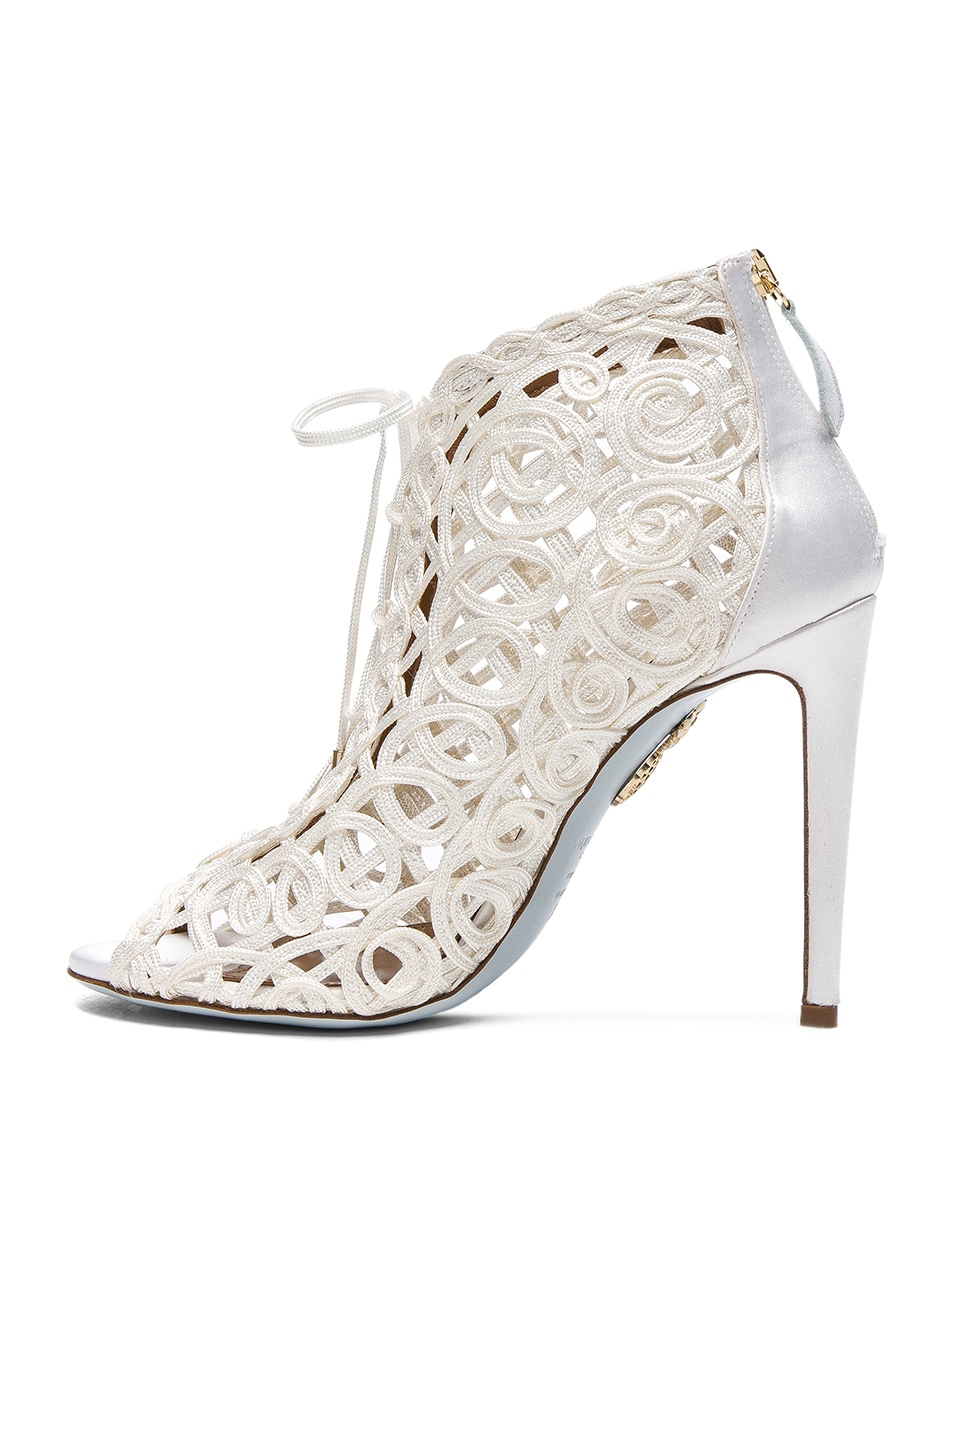 Image 5 of Aquazzura Satin Lattice Kya Bridal Booties in White